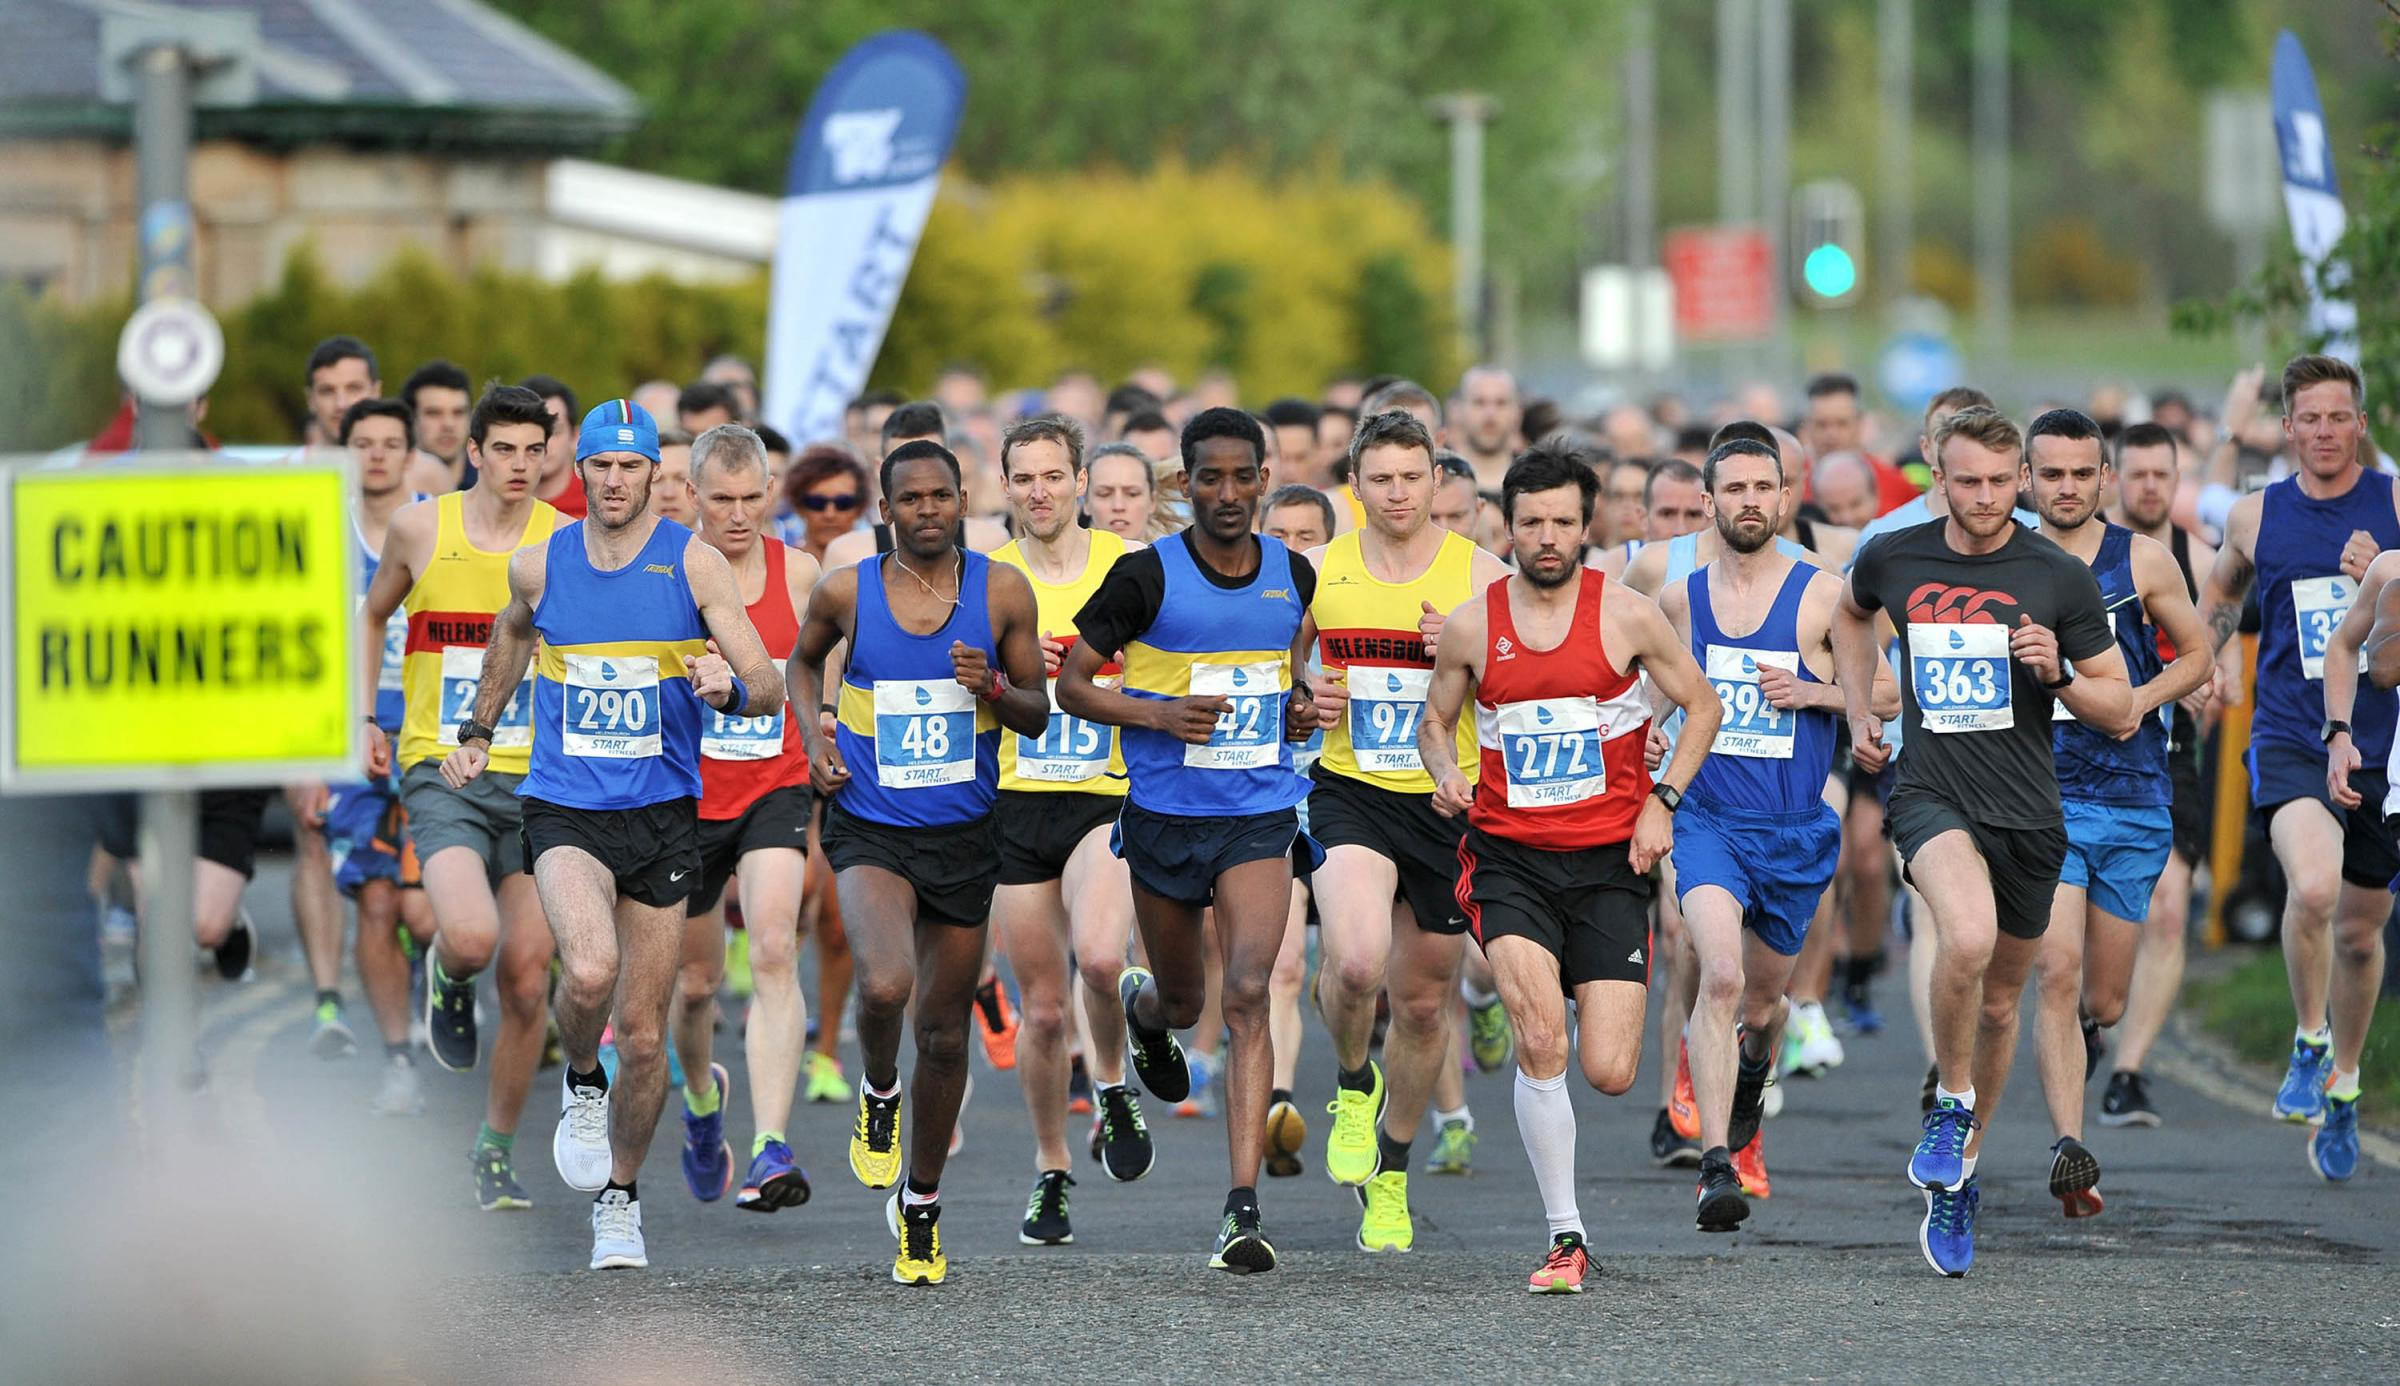 This year's Babcock 10K race series, which starts in Helensburgh on May 9, has already attracted more than 800 entries